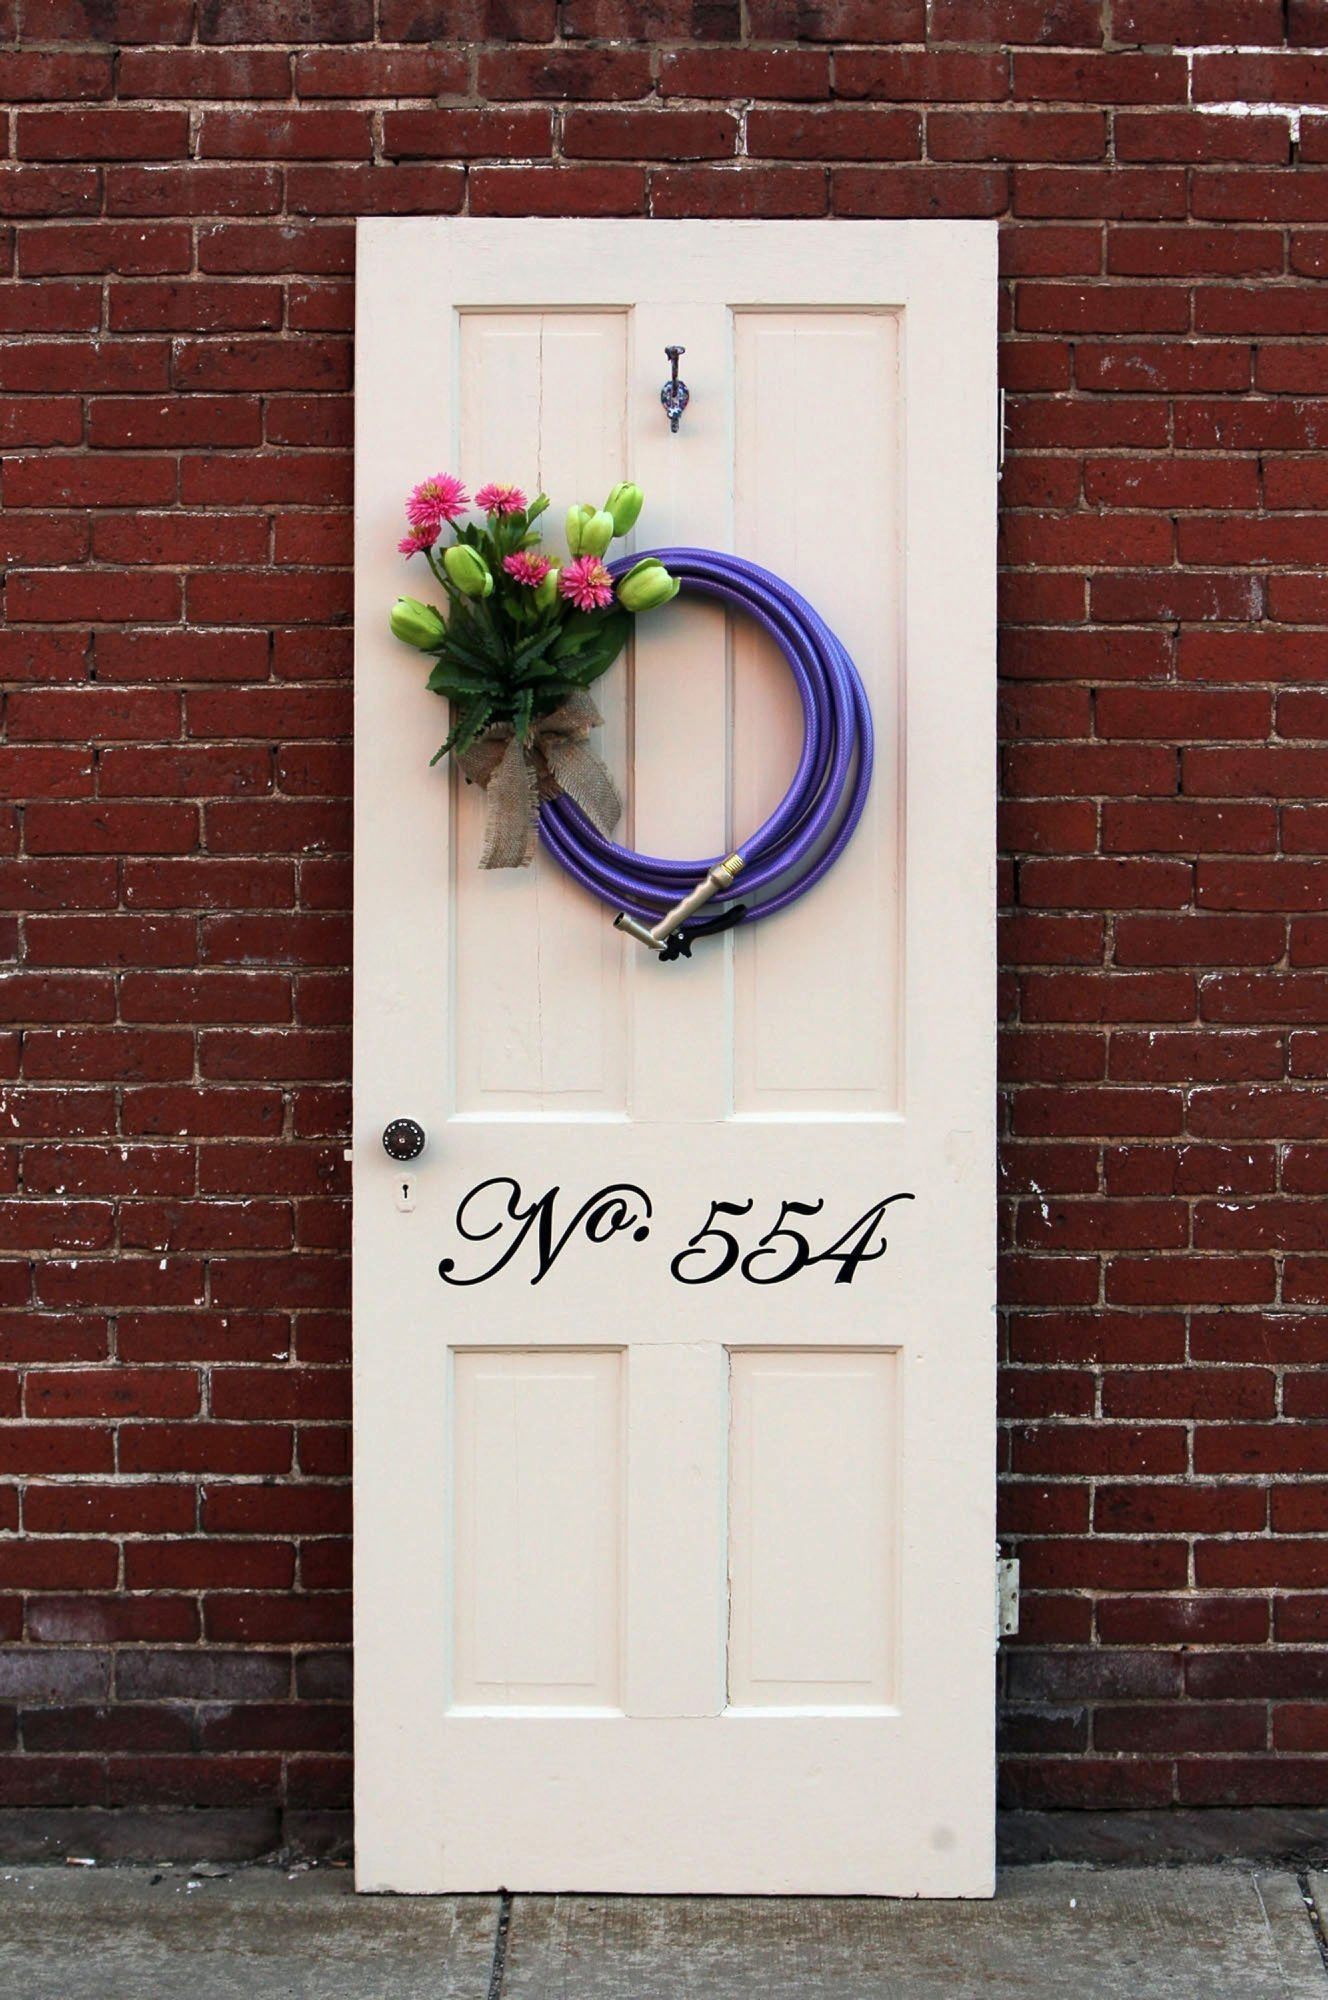 With flowers blooming in the front of houses, the front door can use a makeover to make it fresh as well. Using a few simple items found cheap at antique or design stores can do the trick. (Michael Chritton/Akron Beacon Journal/MCT)